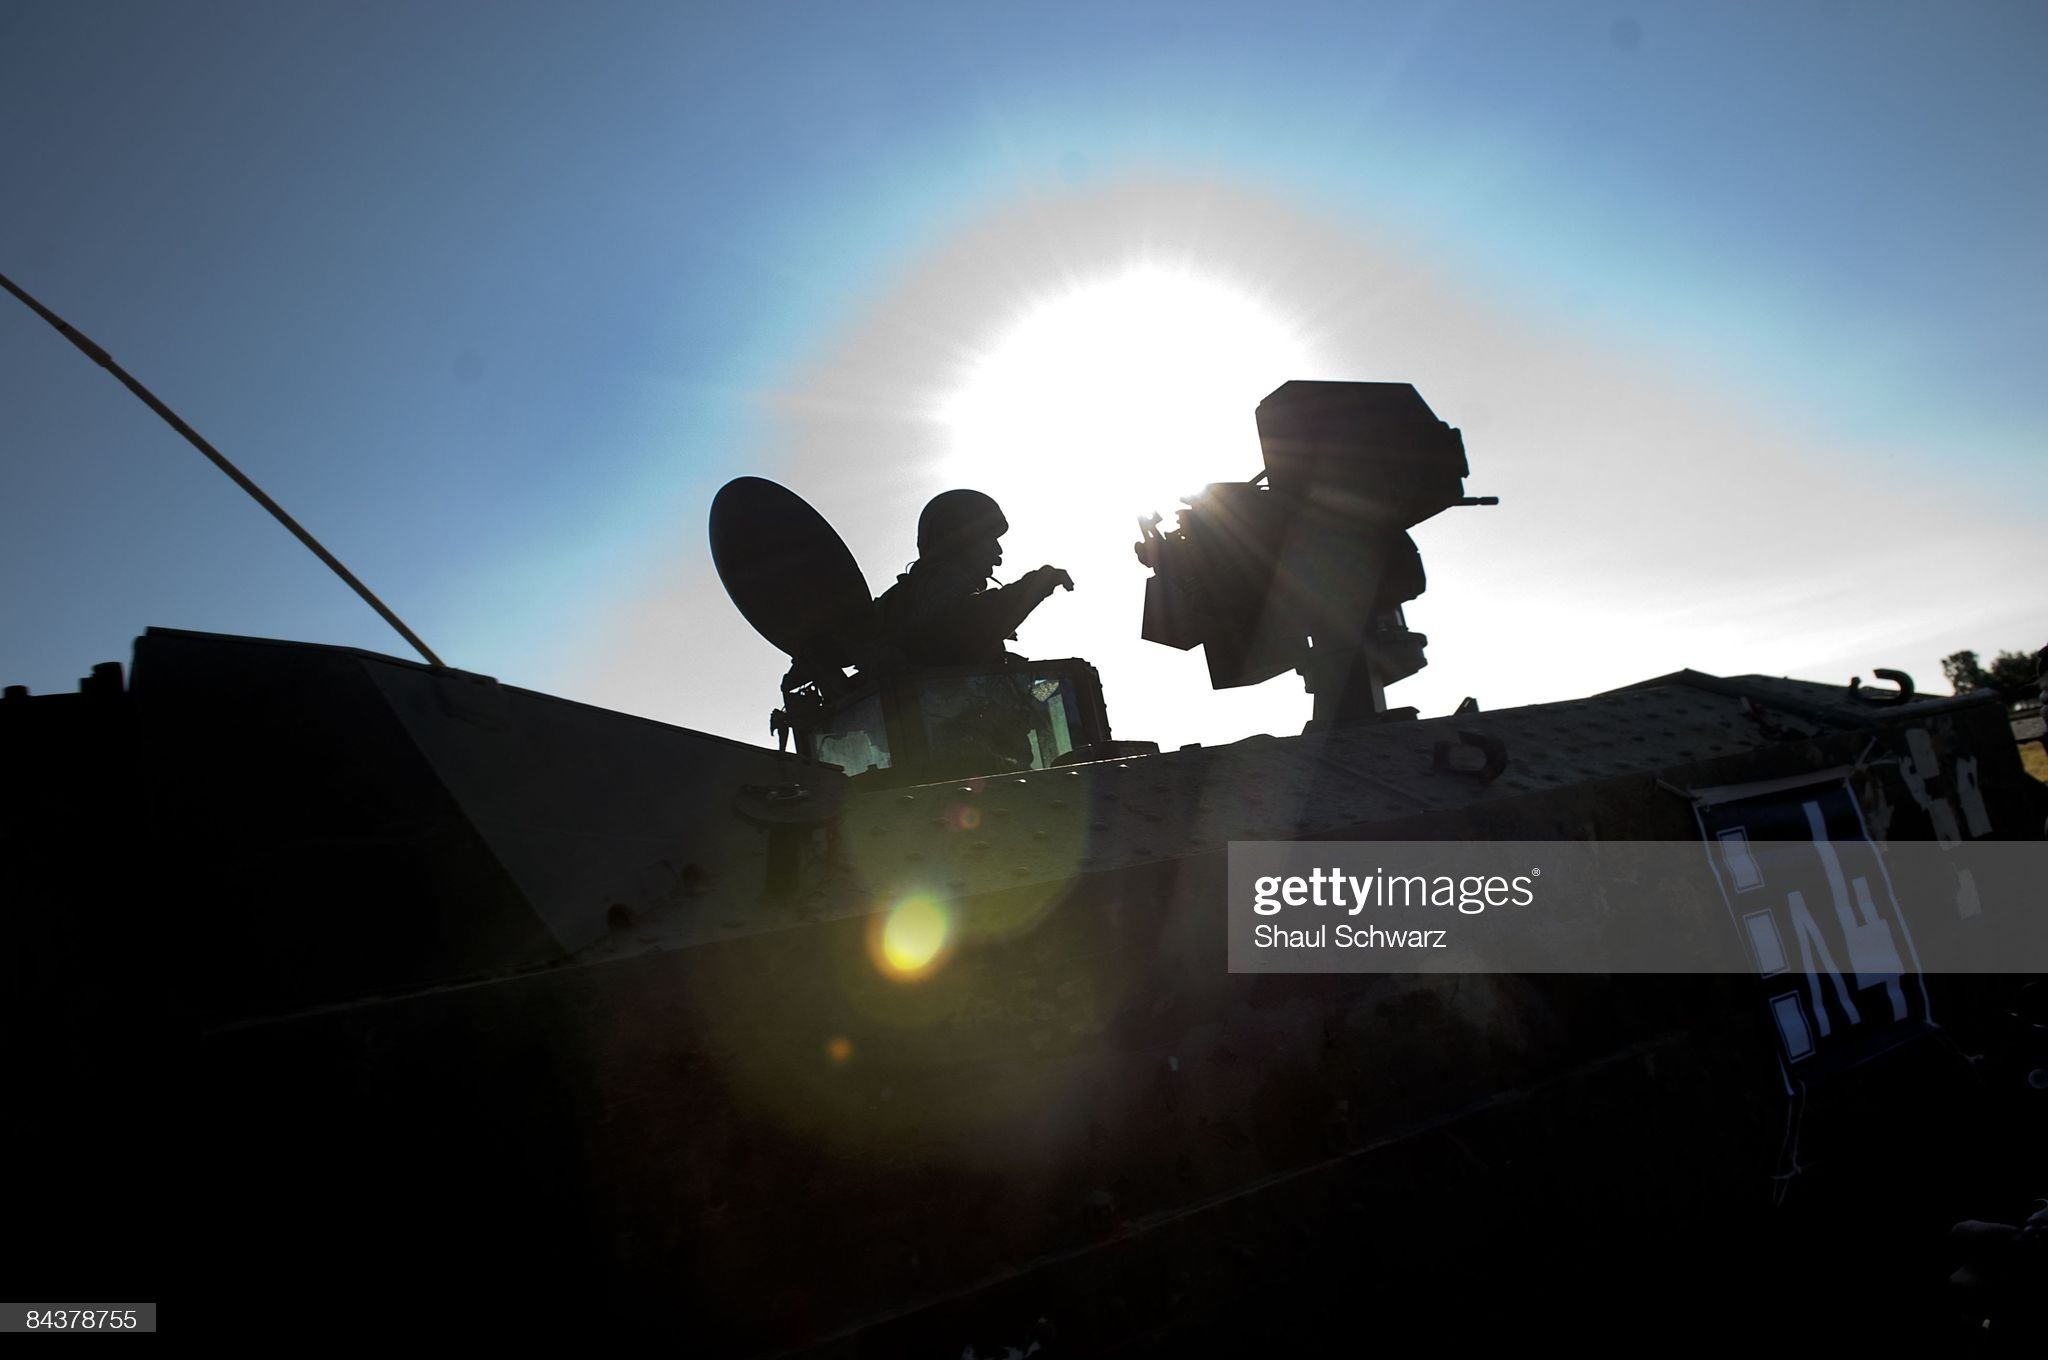 https://media.gettyimages.com/photos/israeli-armored-vehicles-advance-along-the-israeli-side-of-the-on-picture-id84378755?s=2048x2048